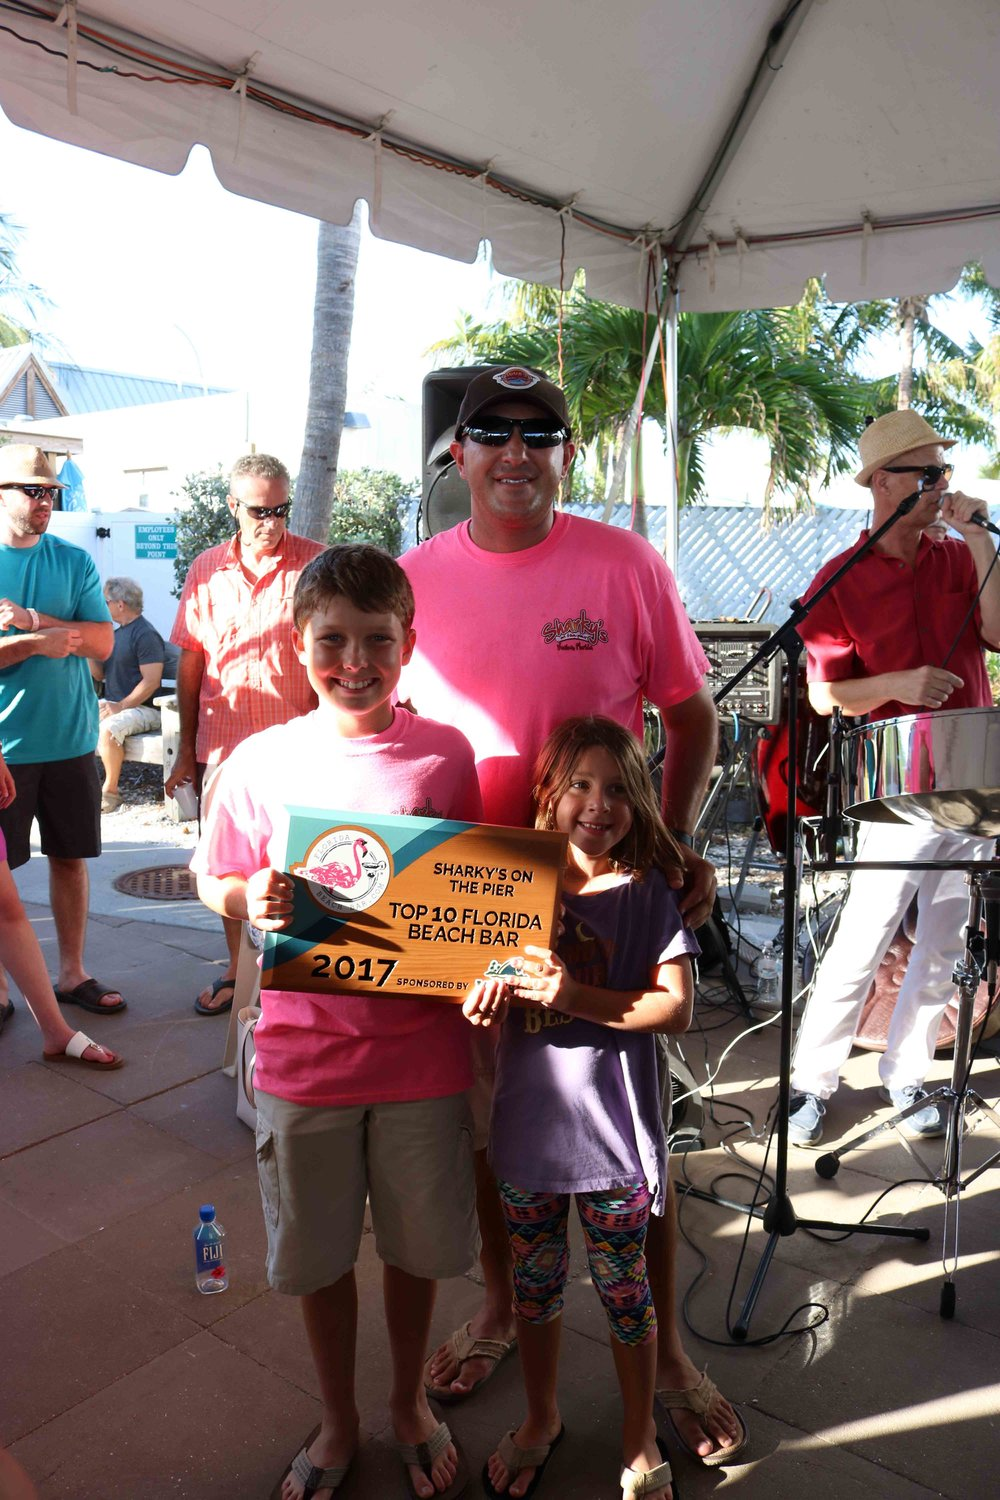 Justin and his family accept the 2017 Top 10 Florida Beach Bar award